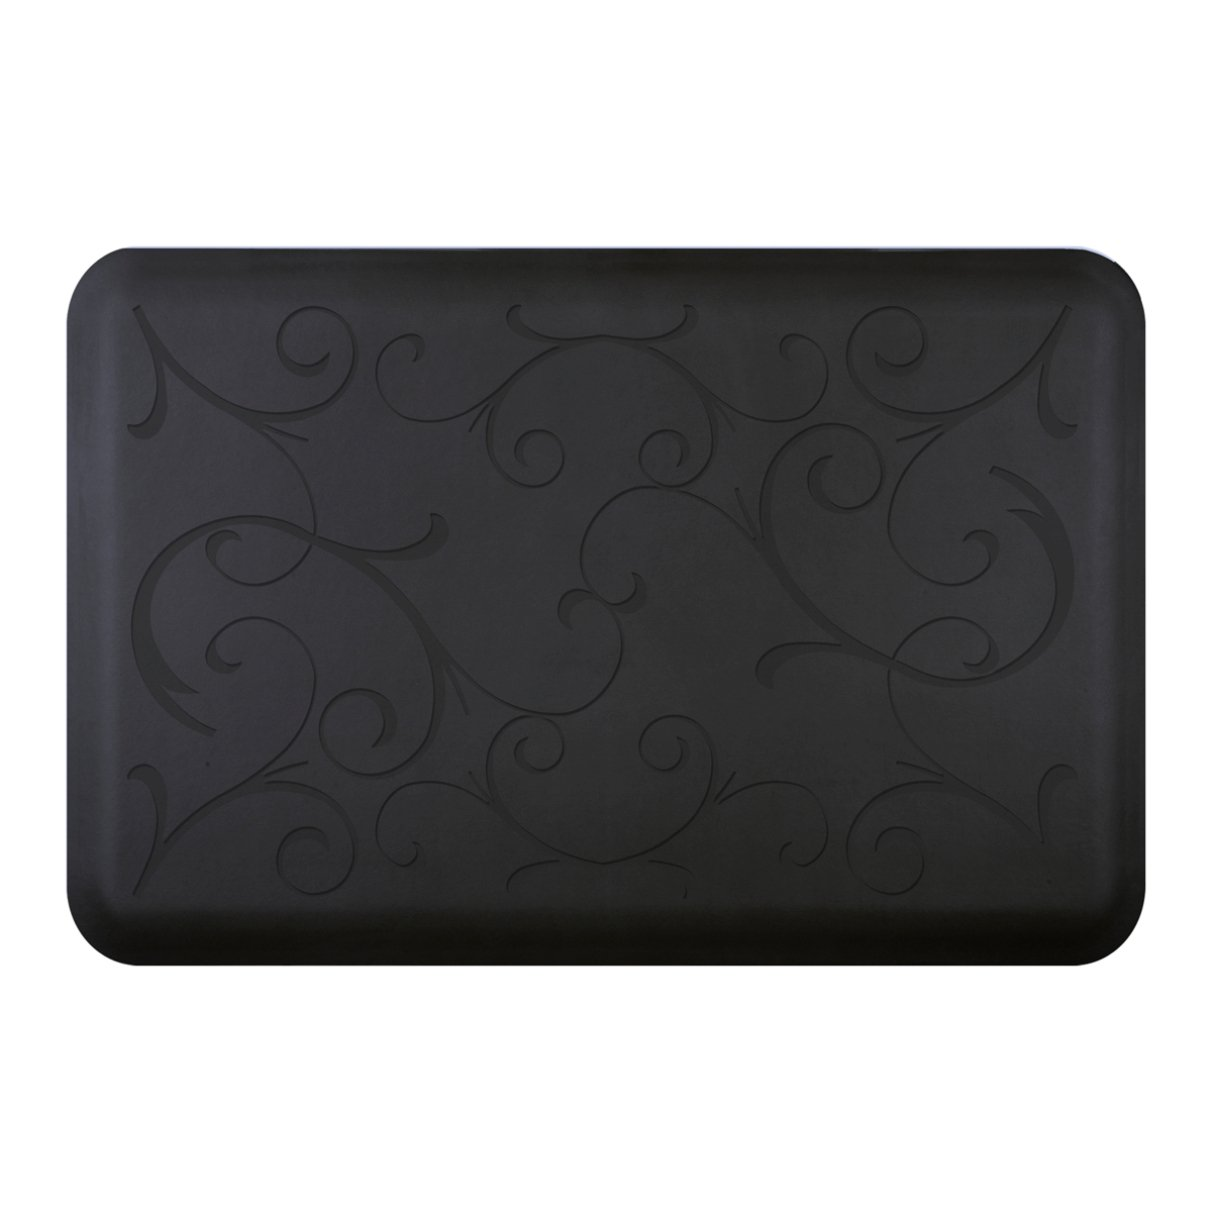 WellnessMats Bella Motif Anti-Fatigue Mat, Black, 36 Inch by 24 Inch